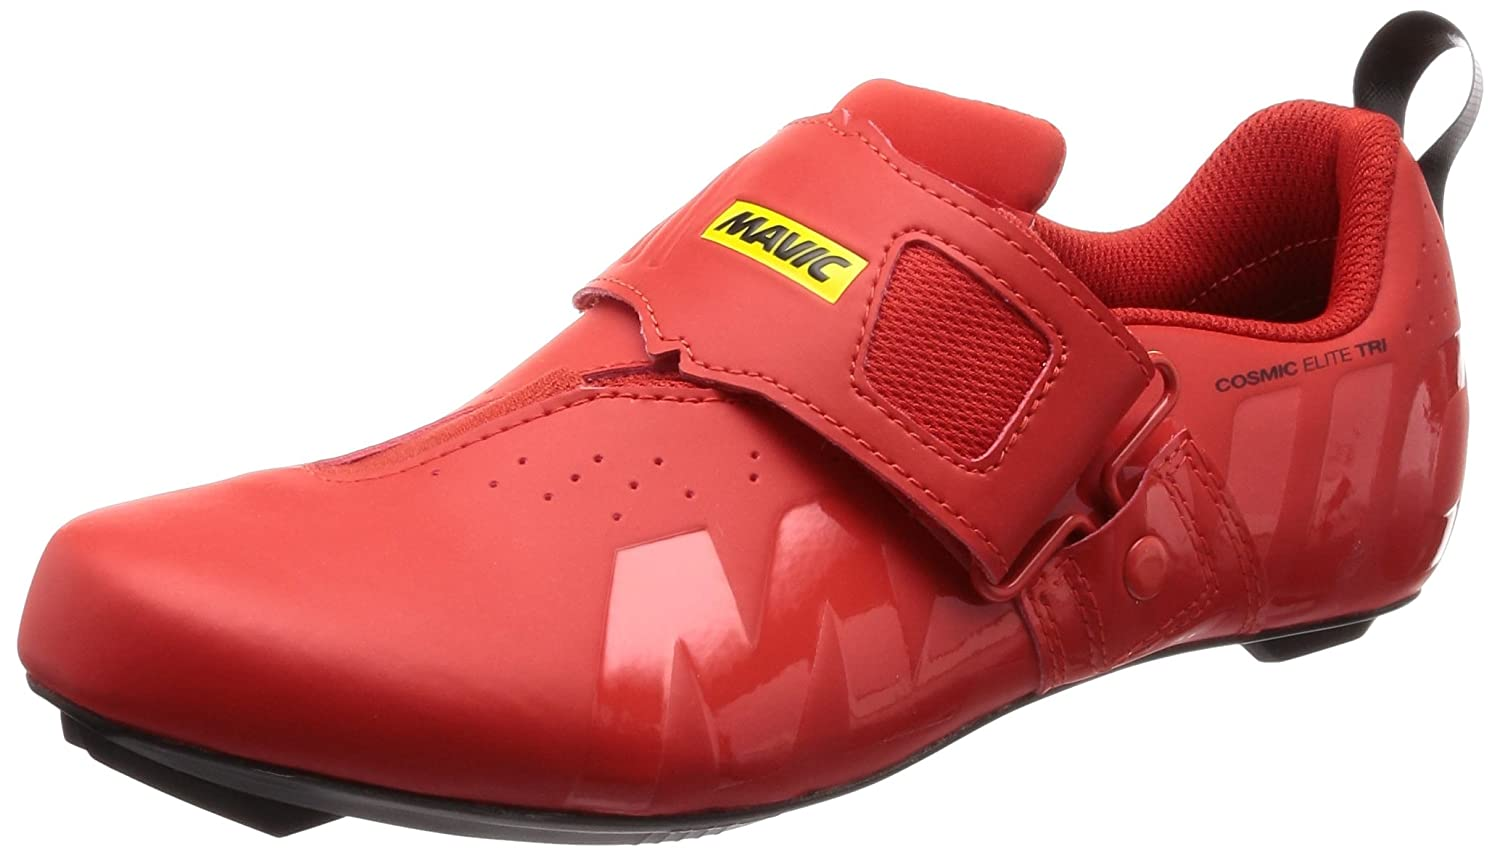 Mavic Cosmic Elite Tri Shoes - Men's L40027700-12.0